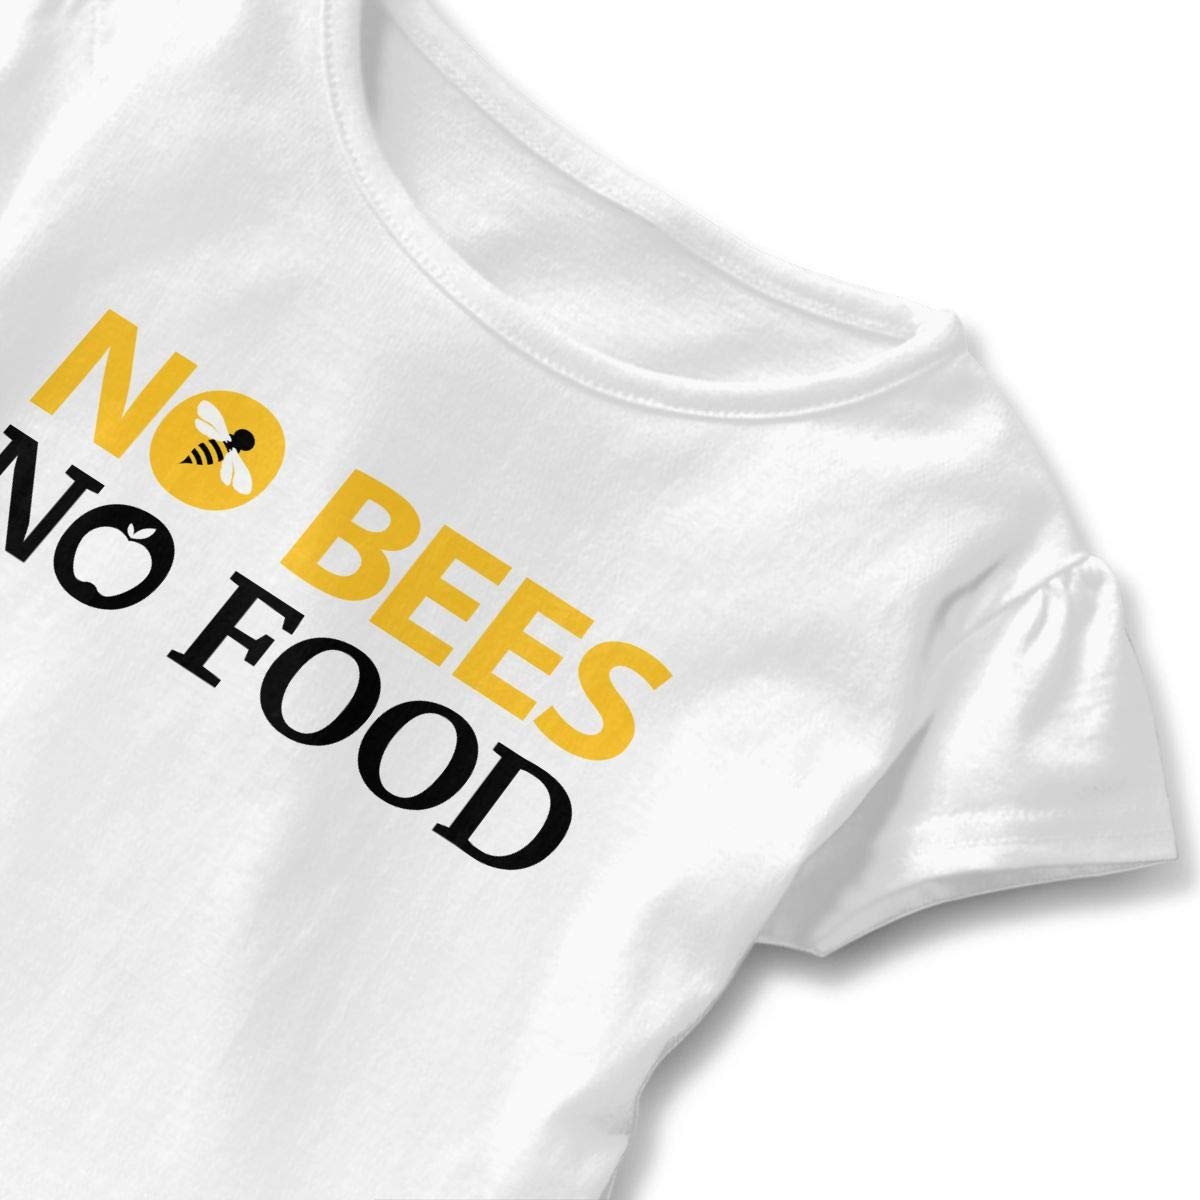 JVNSS Save The Bees T-Shirt Toddler//Infant Flounced T Shirts Fashion Cotton Tops for 2-6T Kids Girls